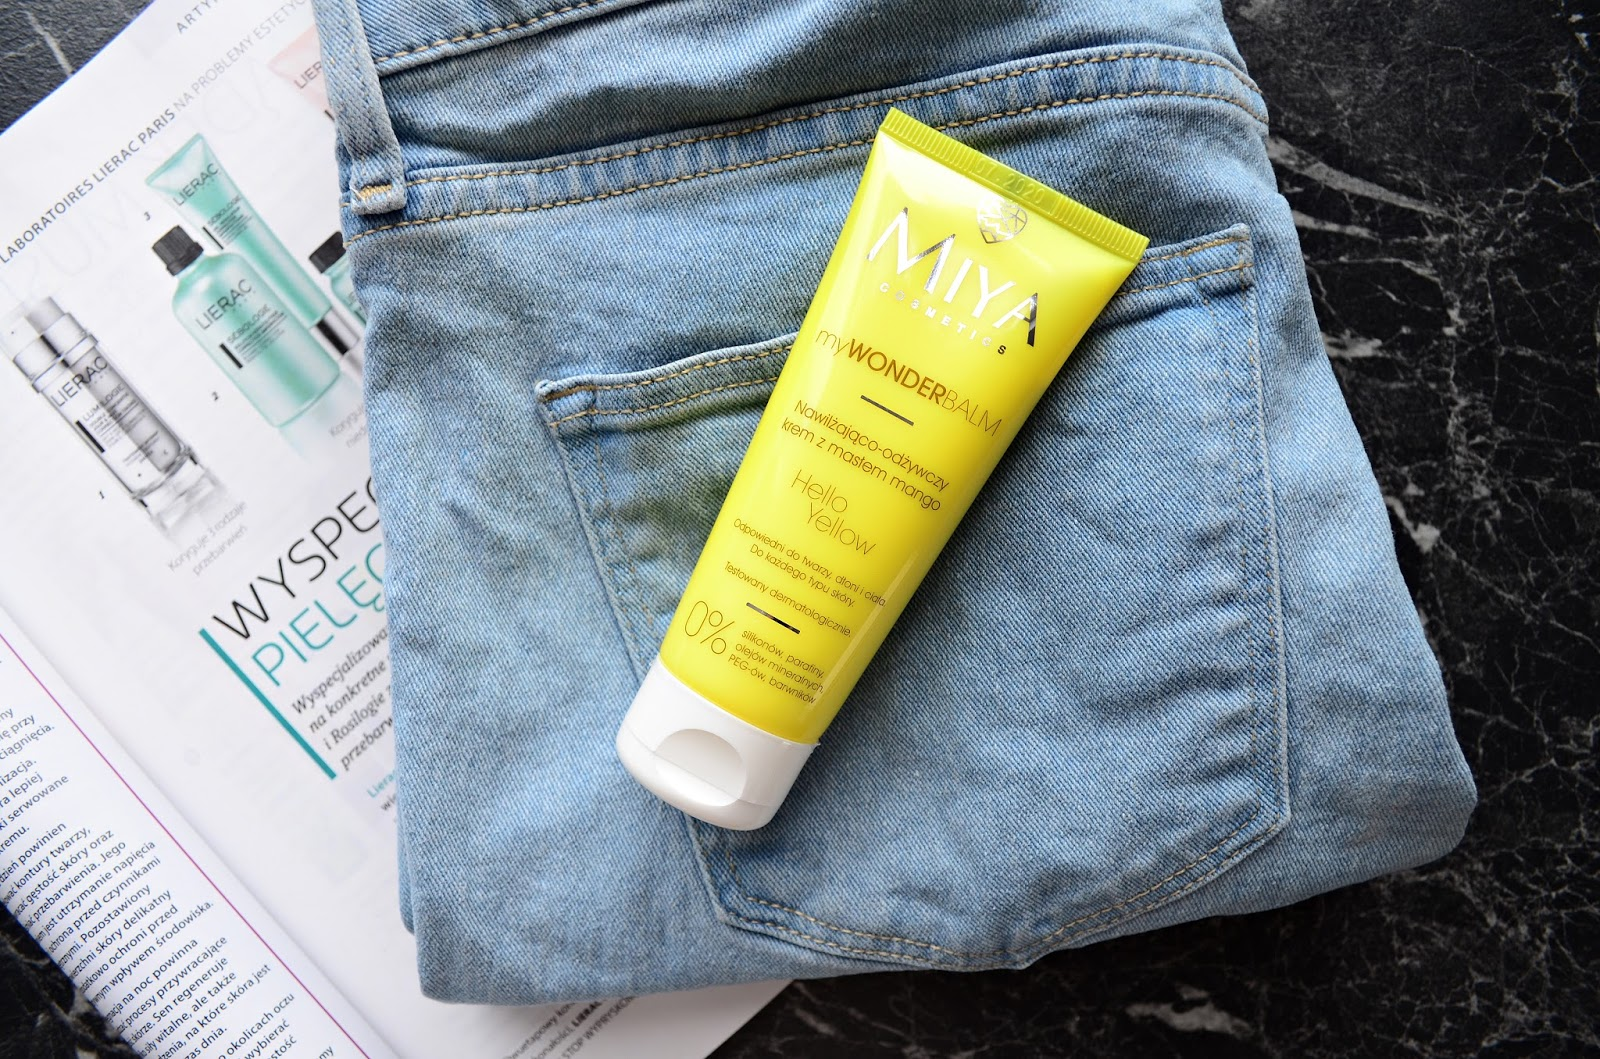 Review: Miya Cosmetics myWonderBalm Hello Yellow moisturizing cream with mango butter